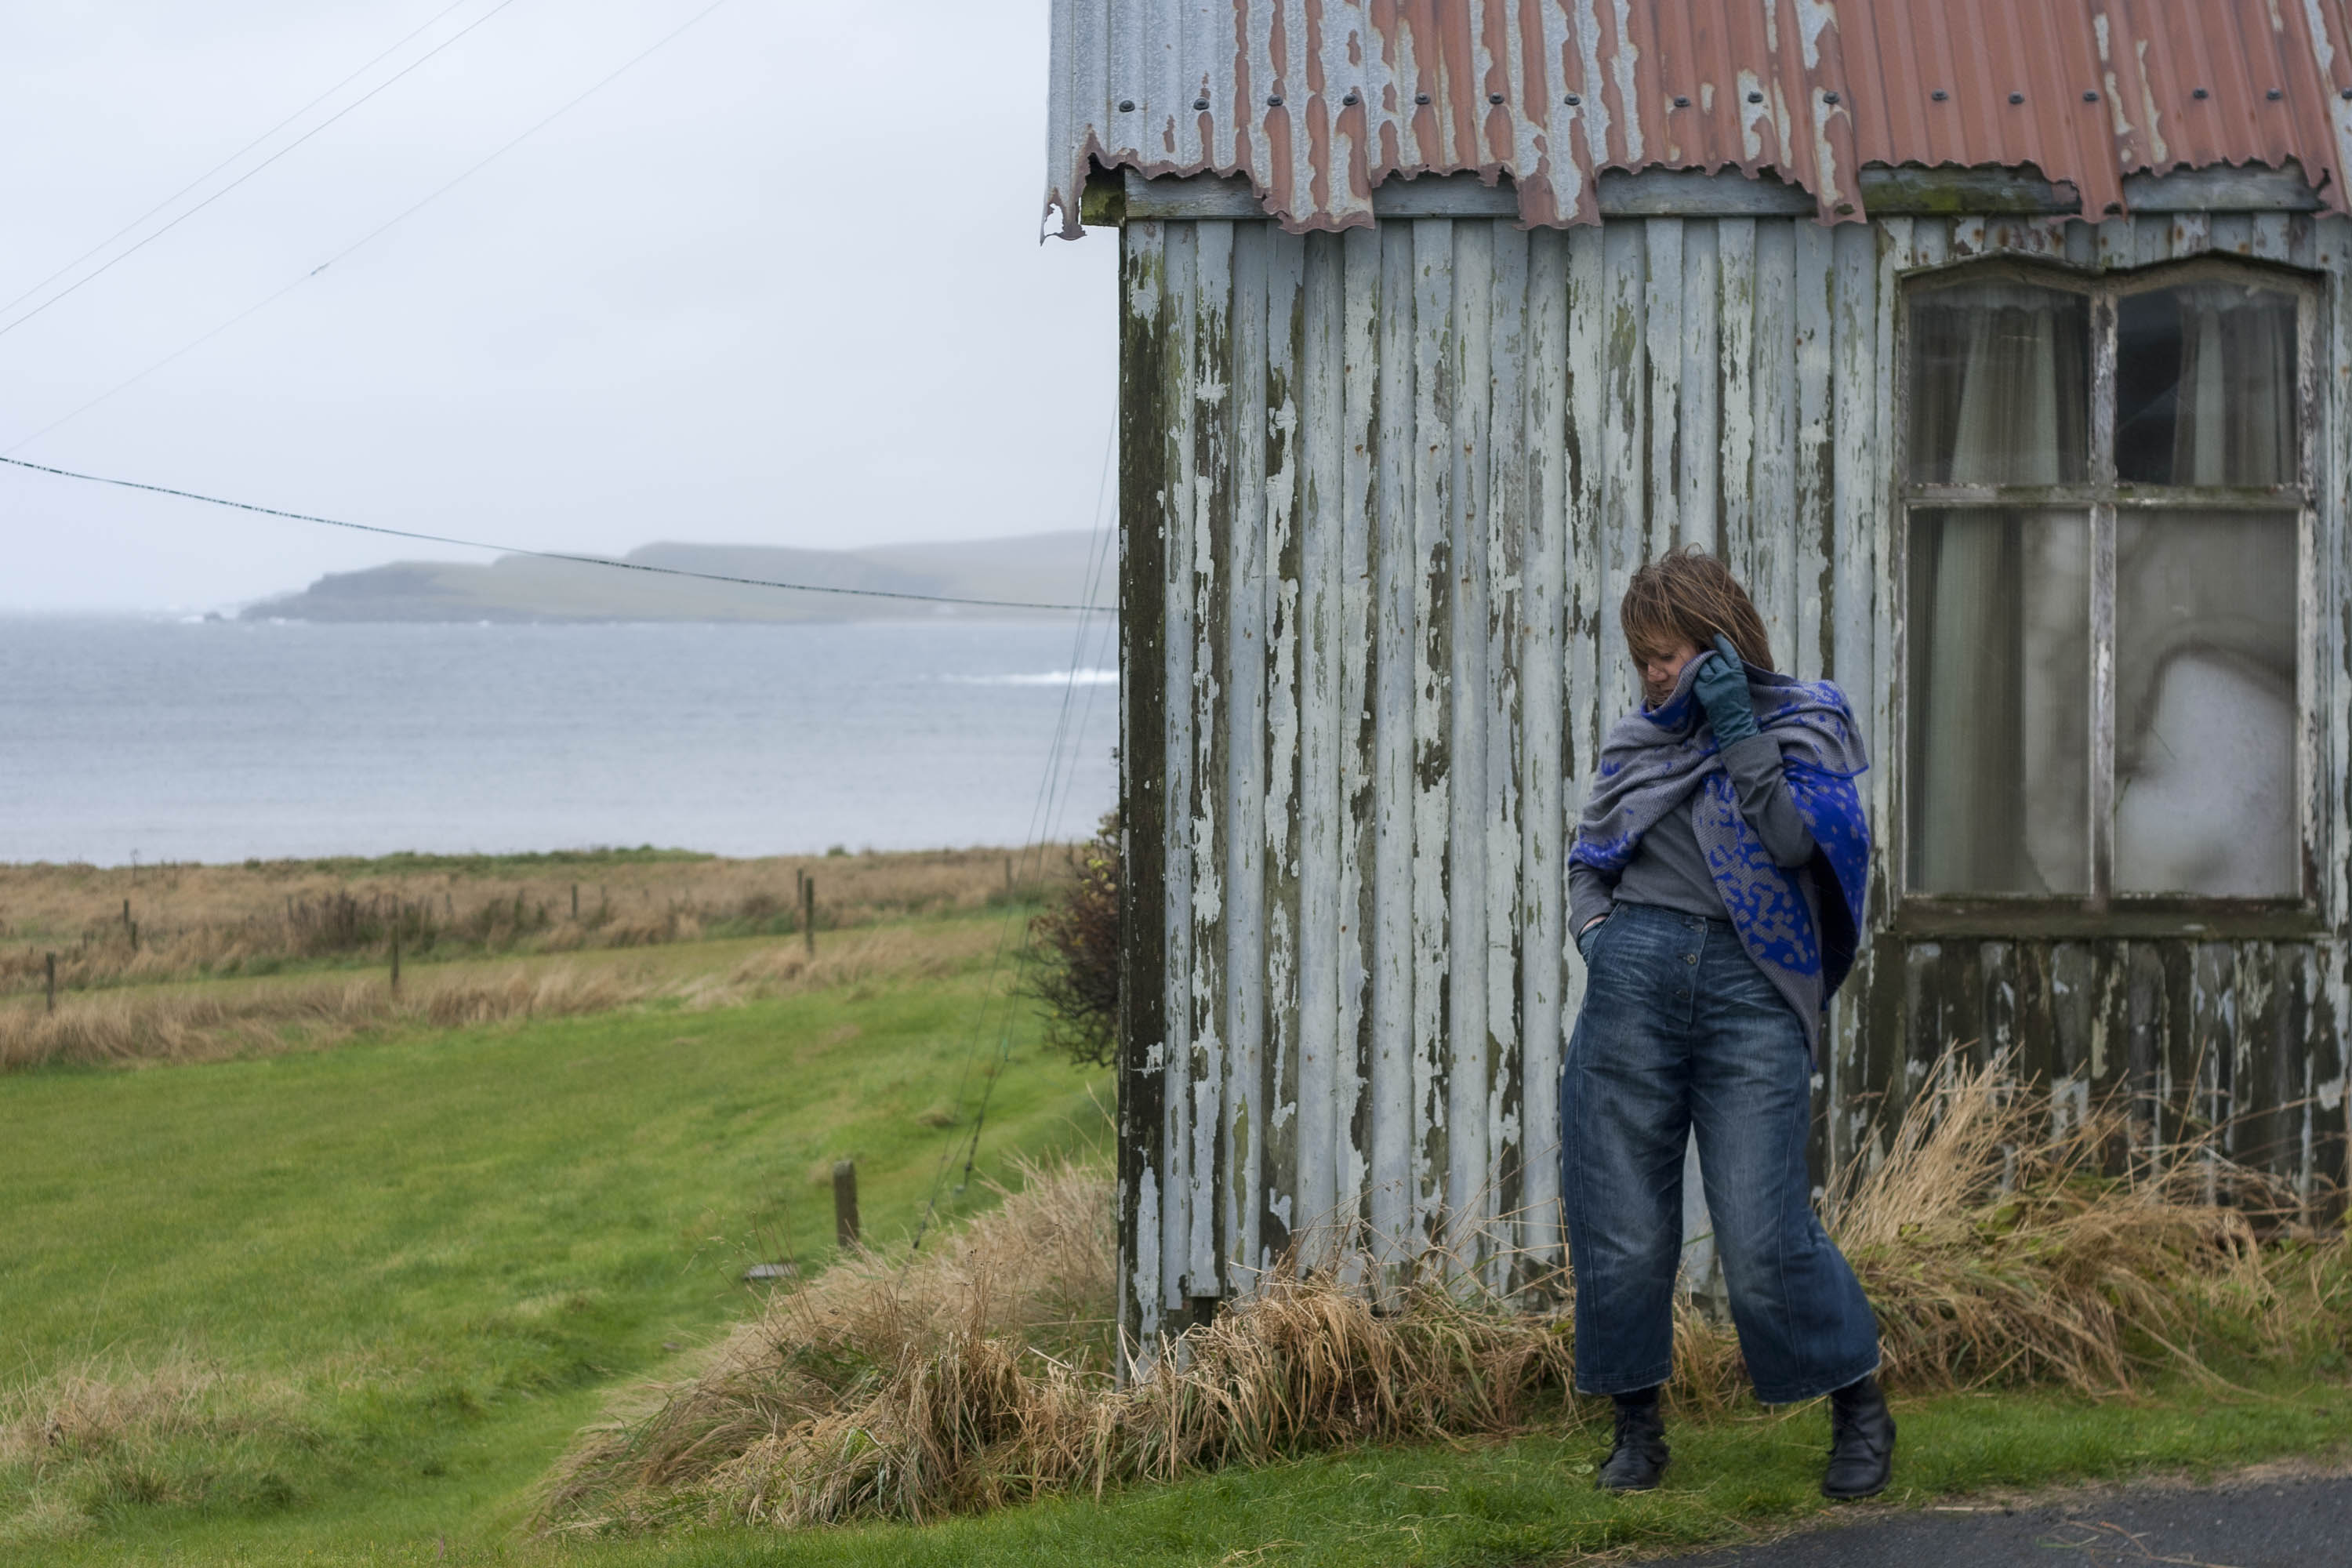 At the Gospel Hall, Hoswick, Shetland - a small, old wooden building with a rusted tin roof. In front of the building a woman stands with a grey and electric blue wrap and indigo loose jeans